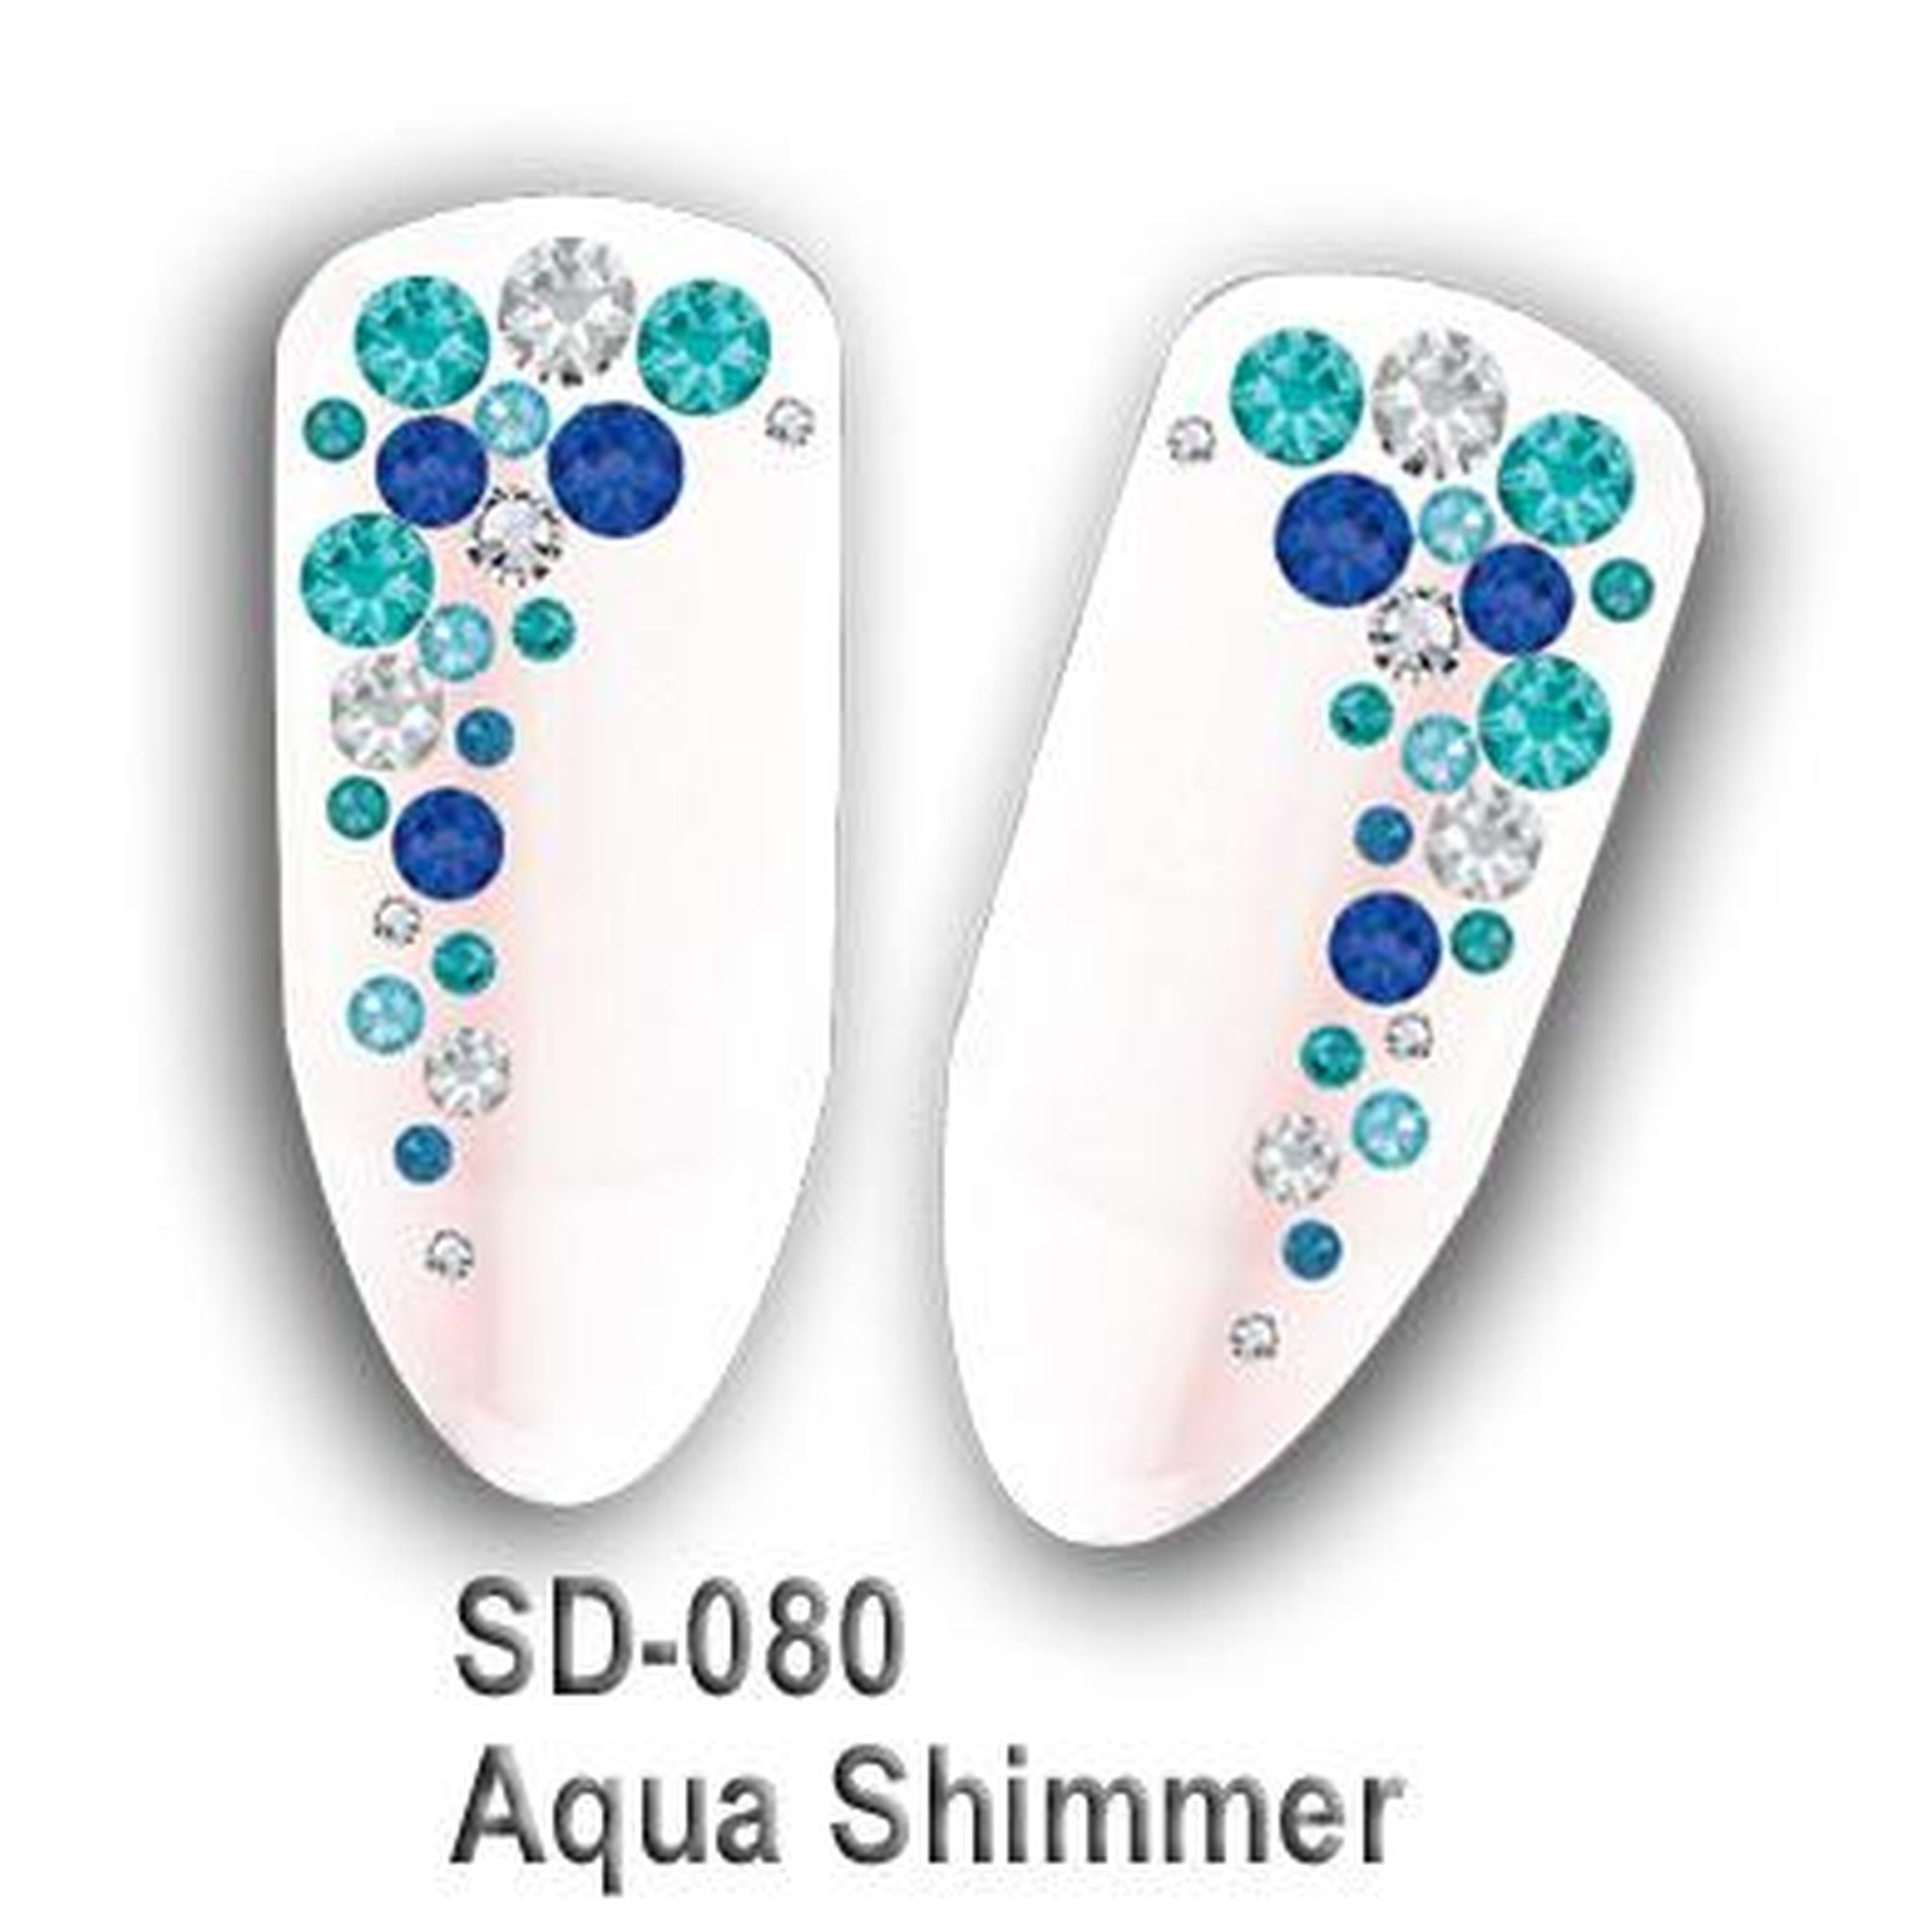 KIT AQUA SHIMMER-Gel Essentialz